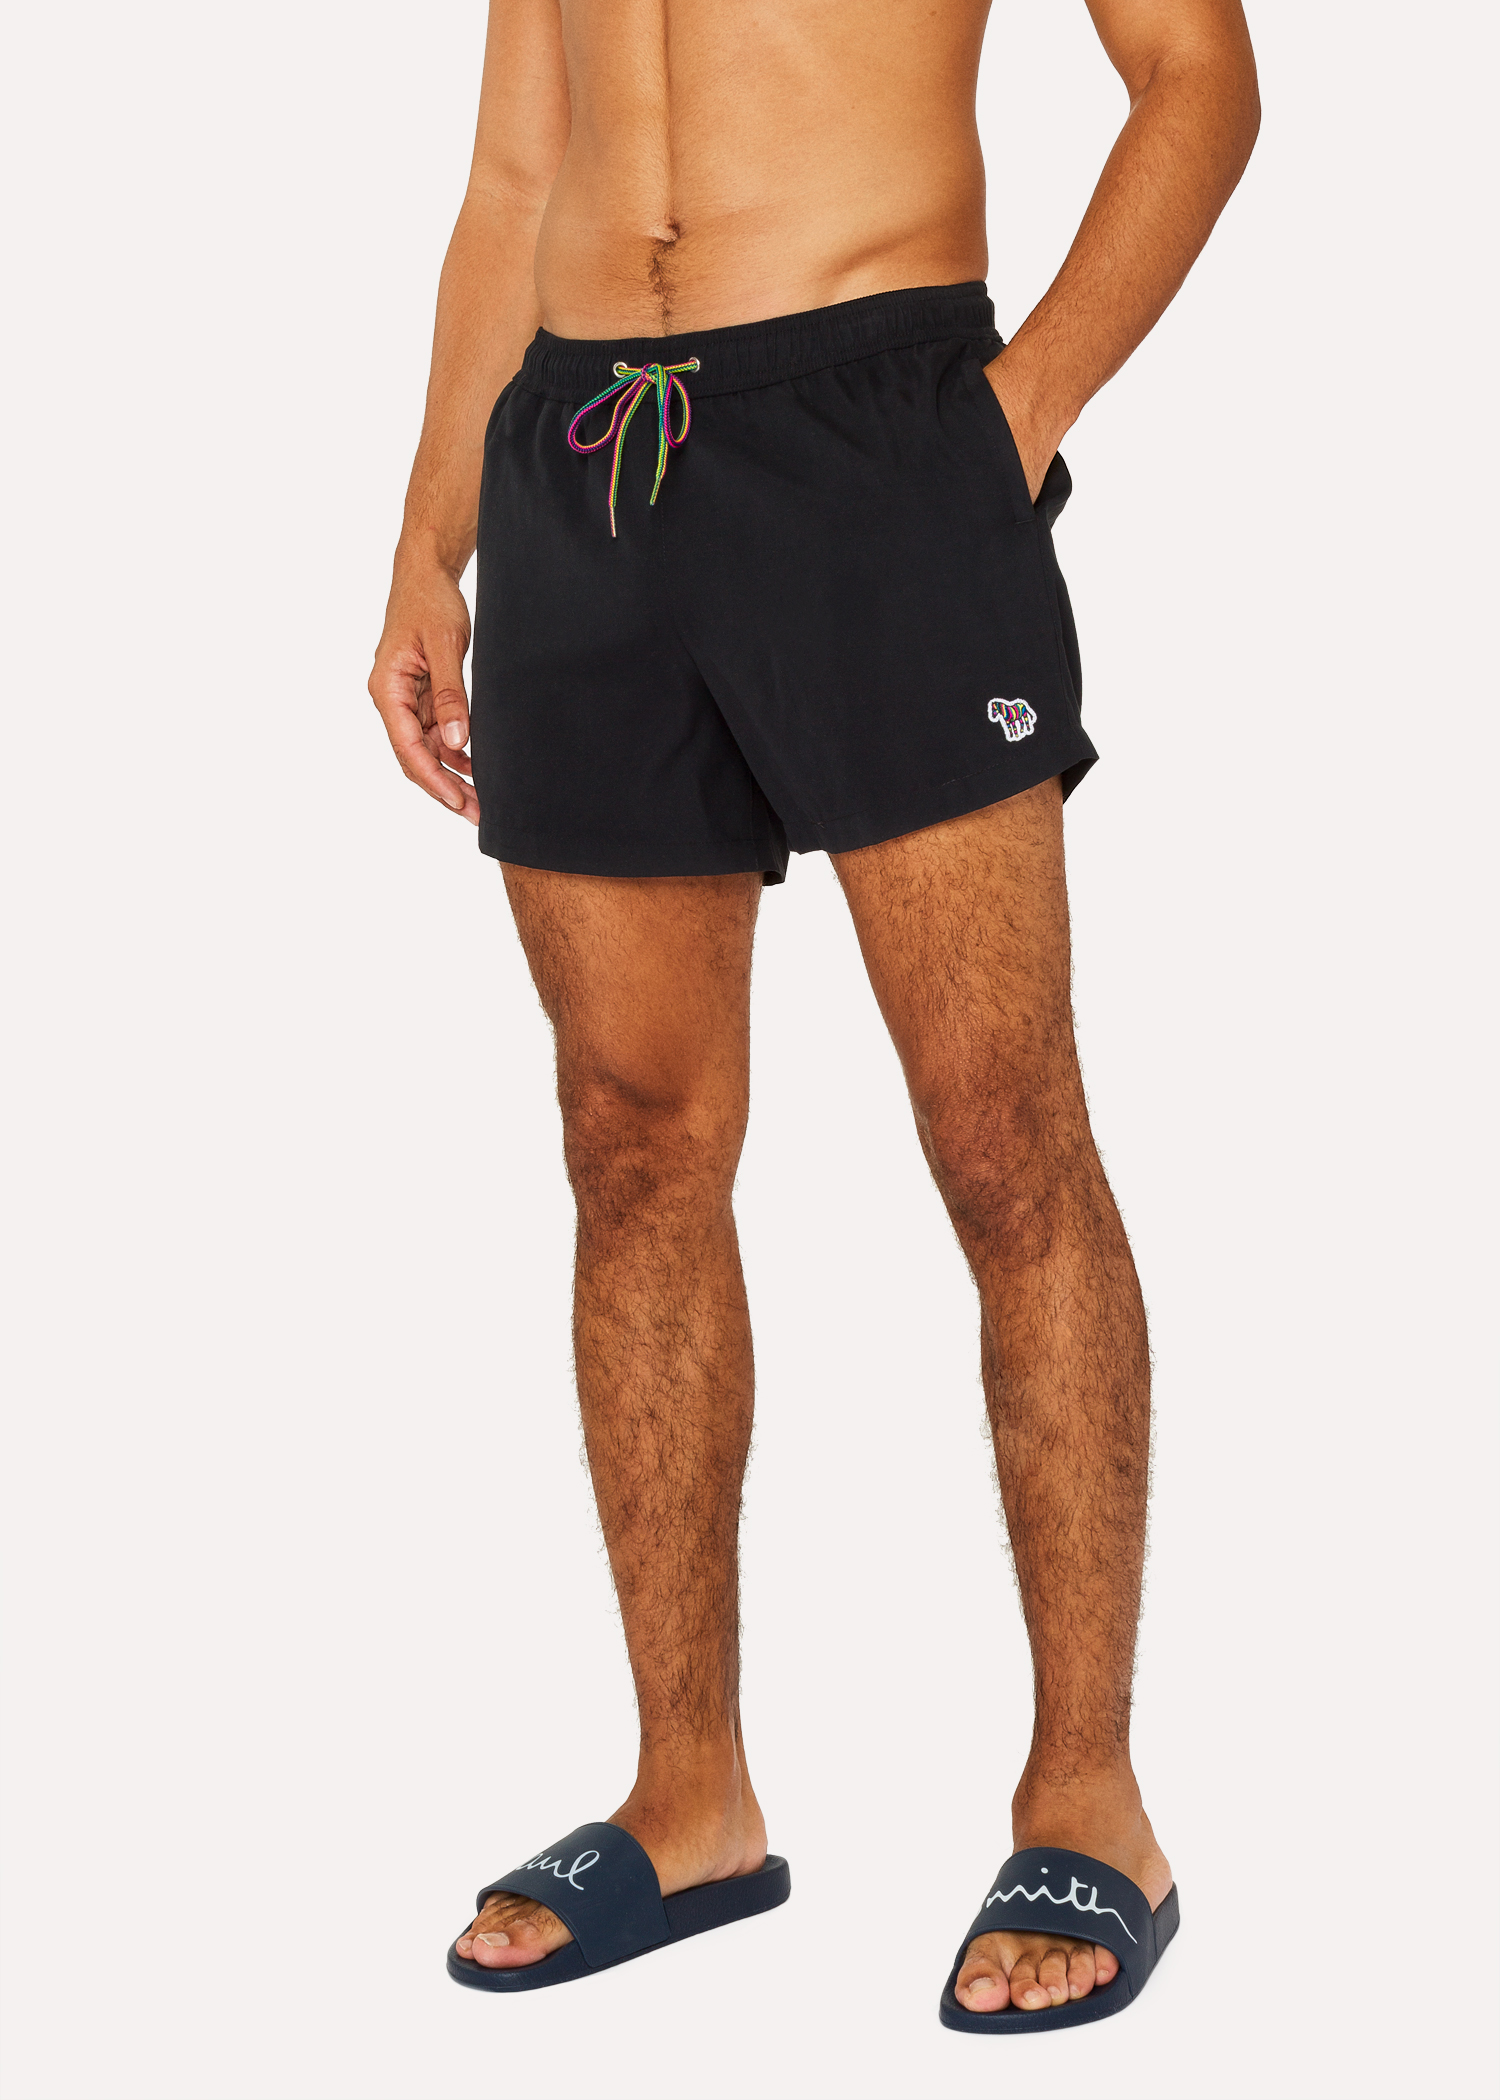 62584f9744 Men's Black Zebra Logo Swim Shorts by Paul Smith